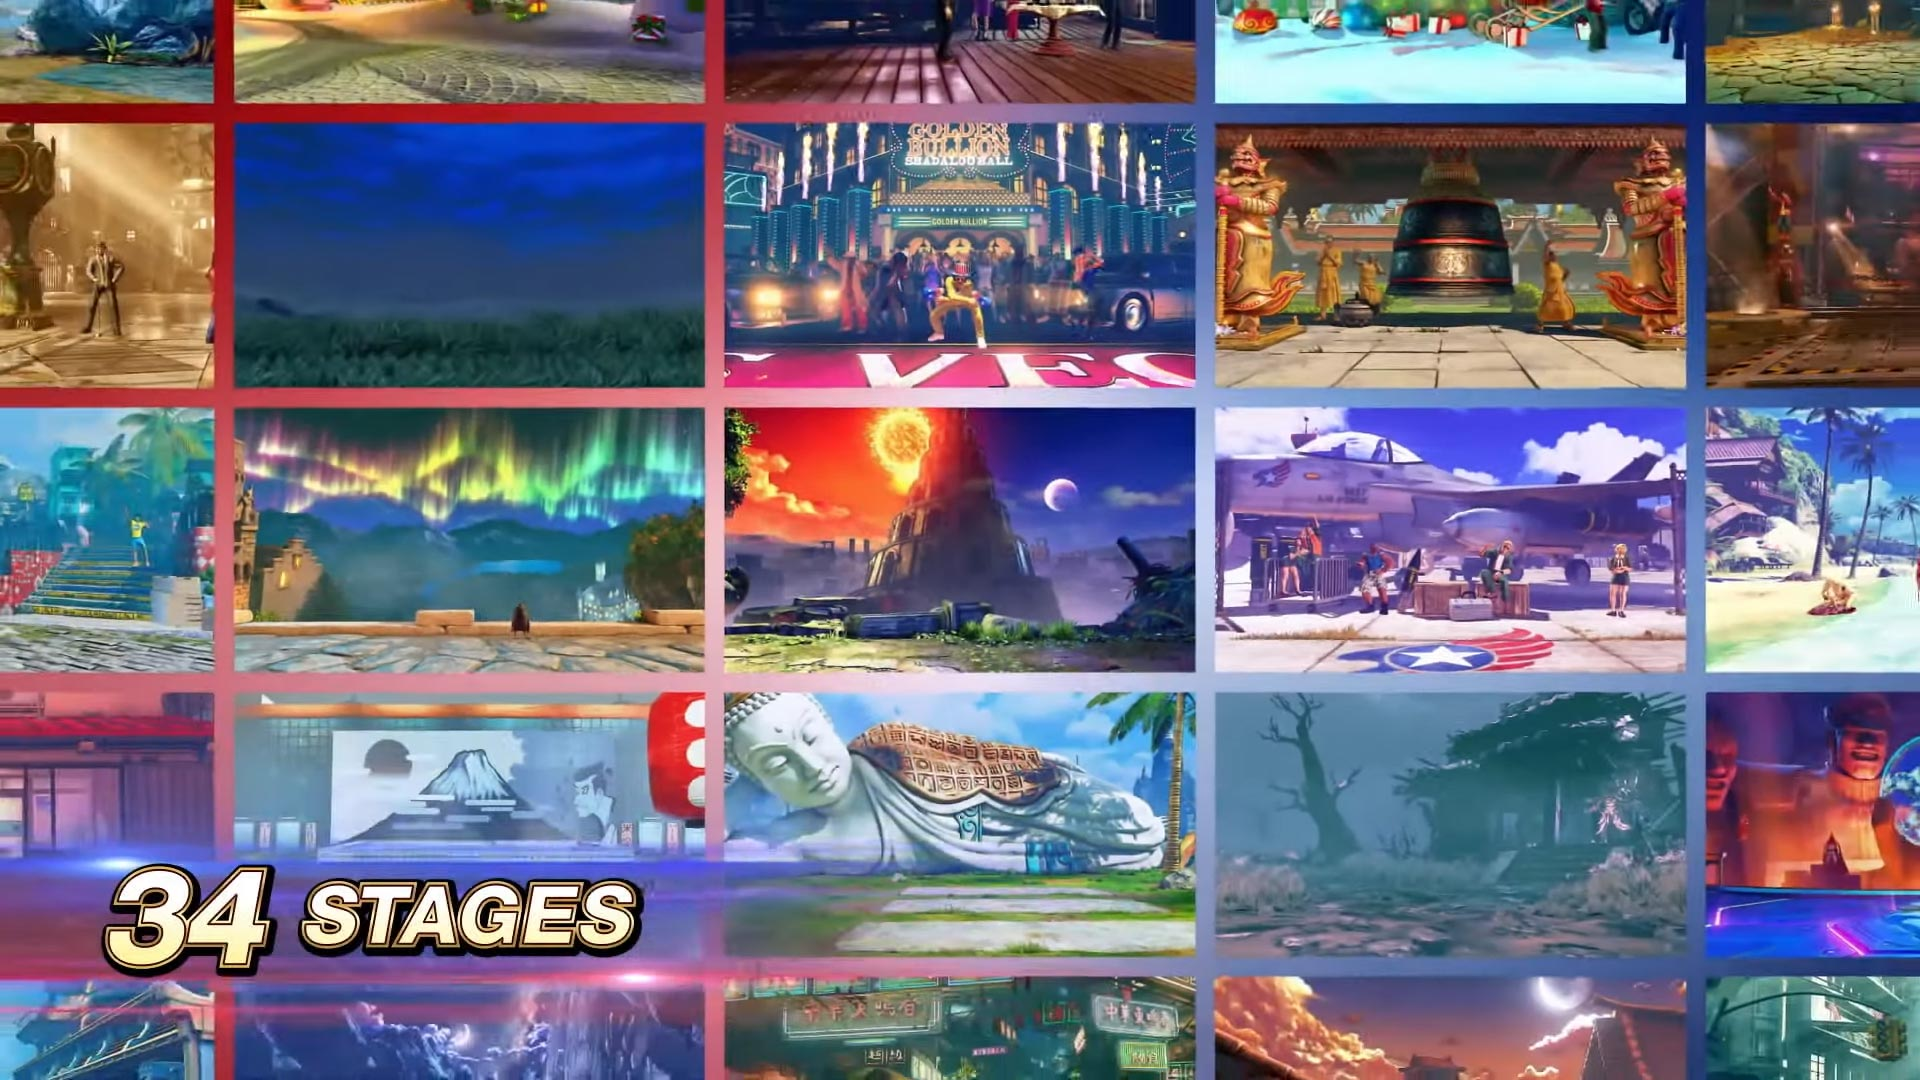 Street Fighter 5 Champion Edition 5 out of 5 image gallery